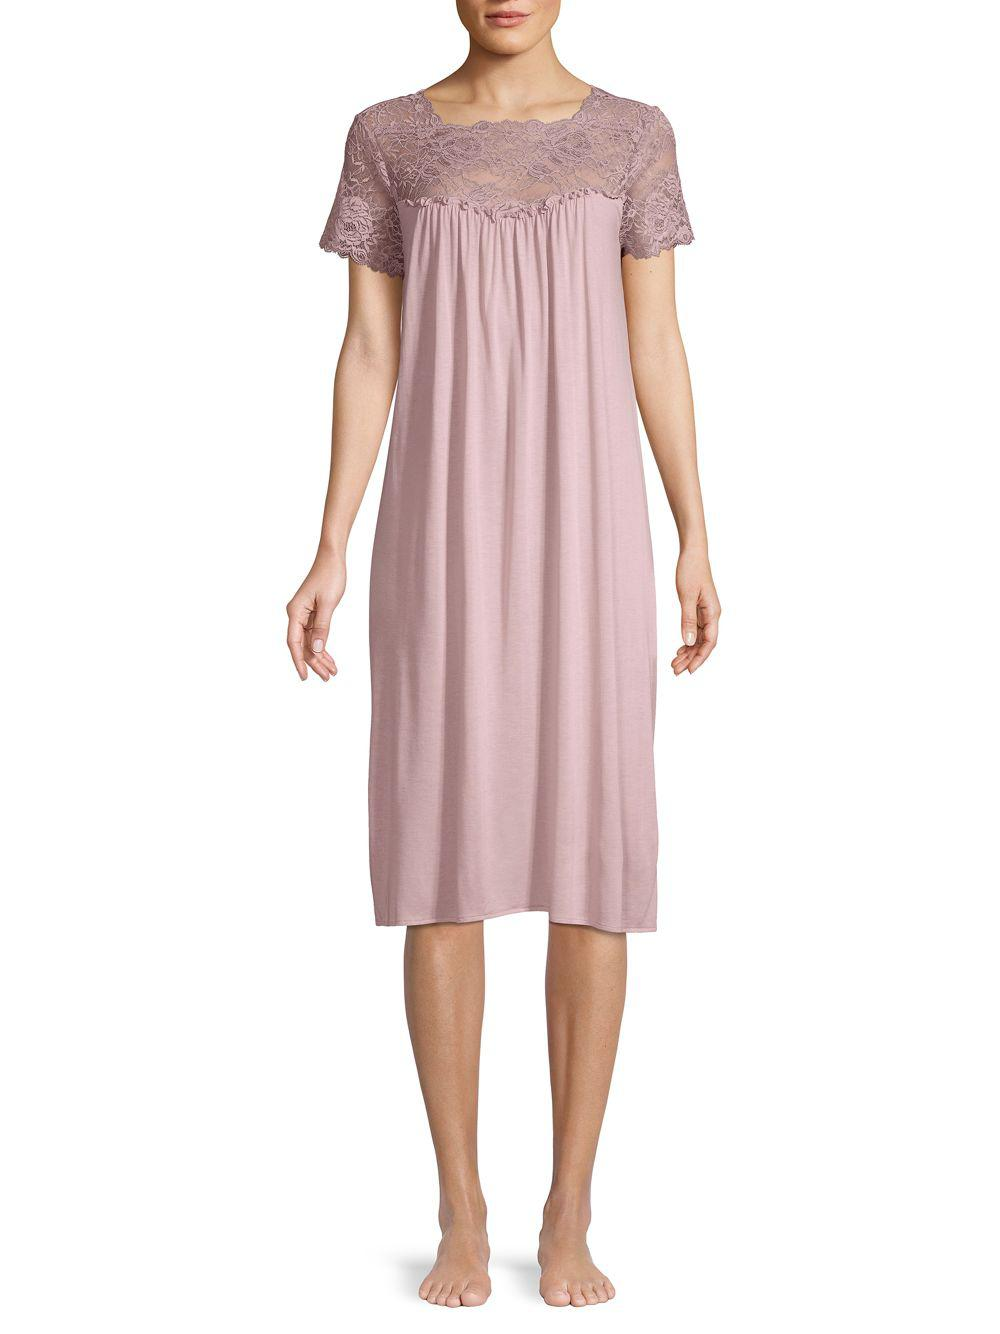 c0a2478ec2 Hanro Ruffled Lace Nightgown in Pink - Lyst